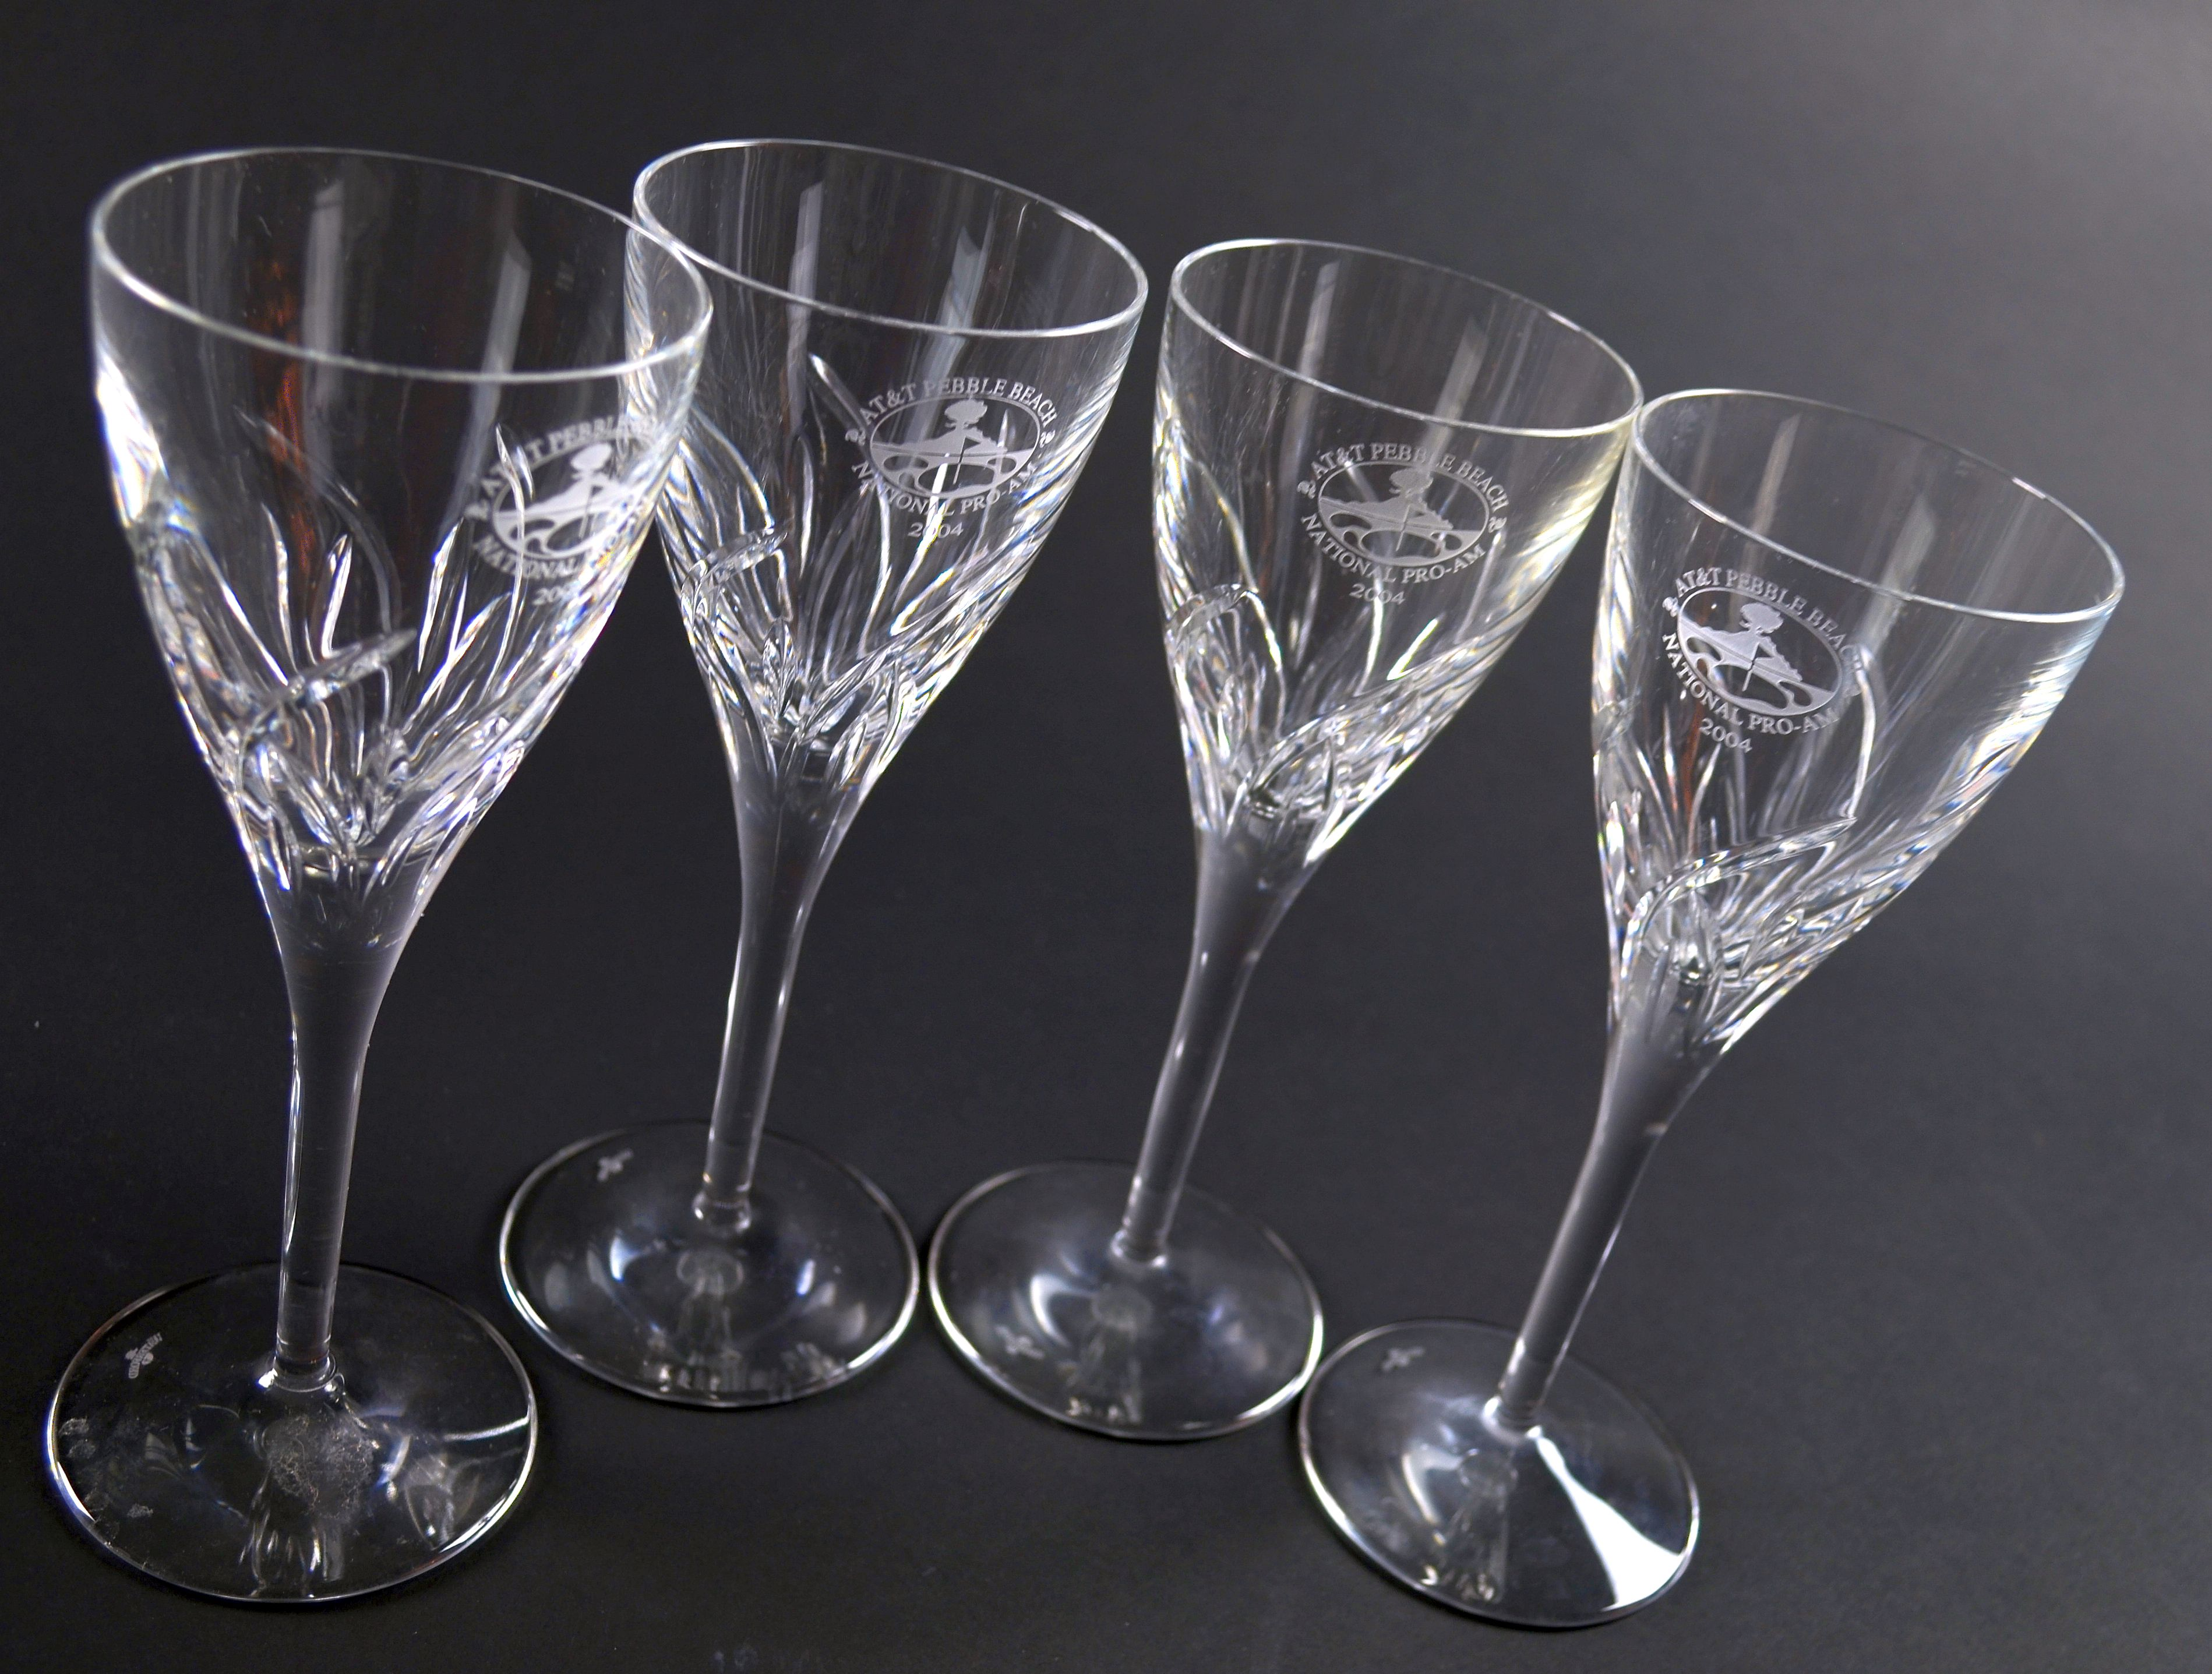 Flagrant Pebble Beach Golf Tournament 2004 Waterford Crystal Wineglasses Lot Detail Set Pebble Beach Golf Tournament 2004 Waterford Crystal Wine Glasses Uk Waterford Crystal Wine Glasses Outlet Set houzz-02 Waterford Crystal Wine Glasses